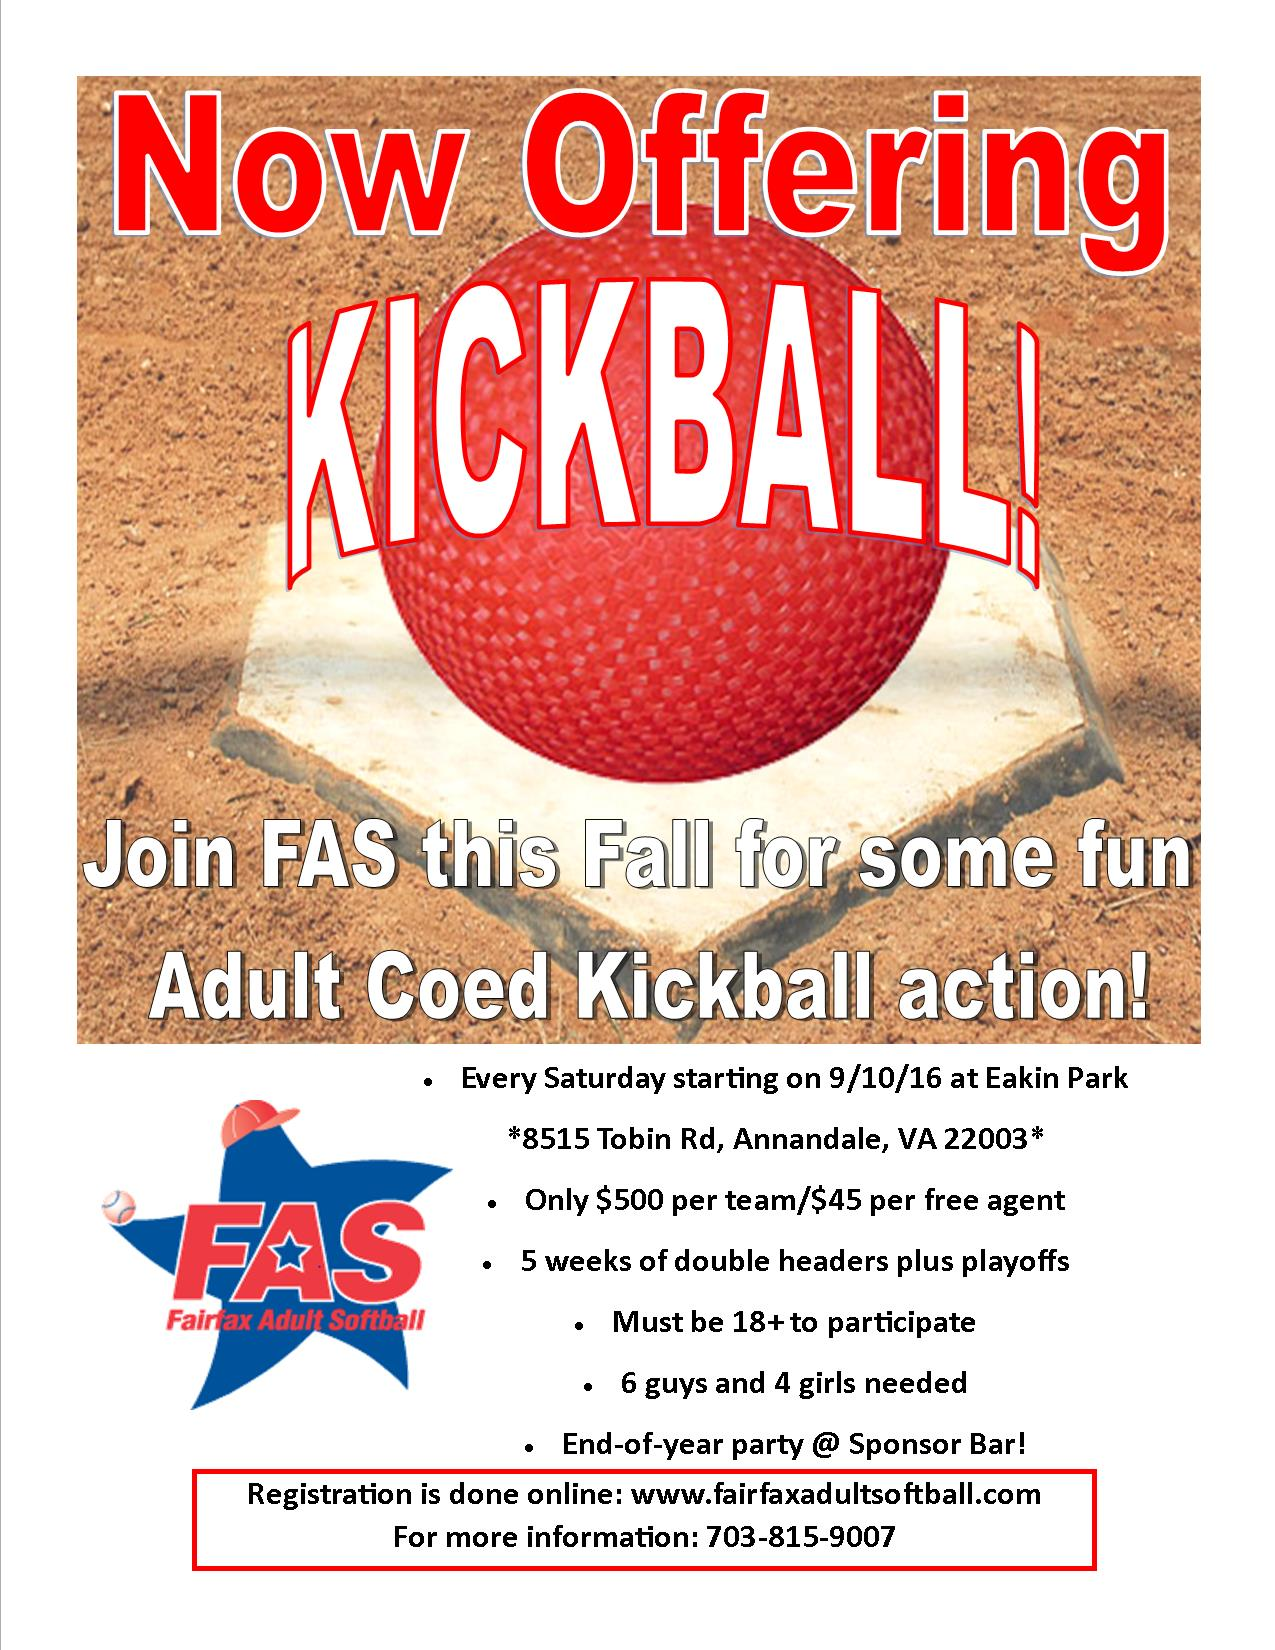 FAS NOW OFFERING KICKBALL